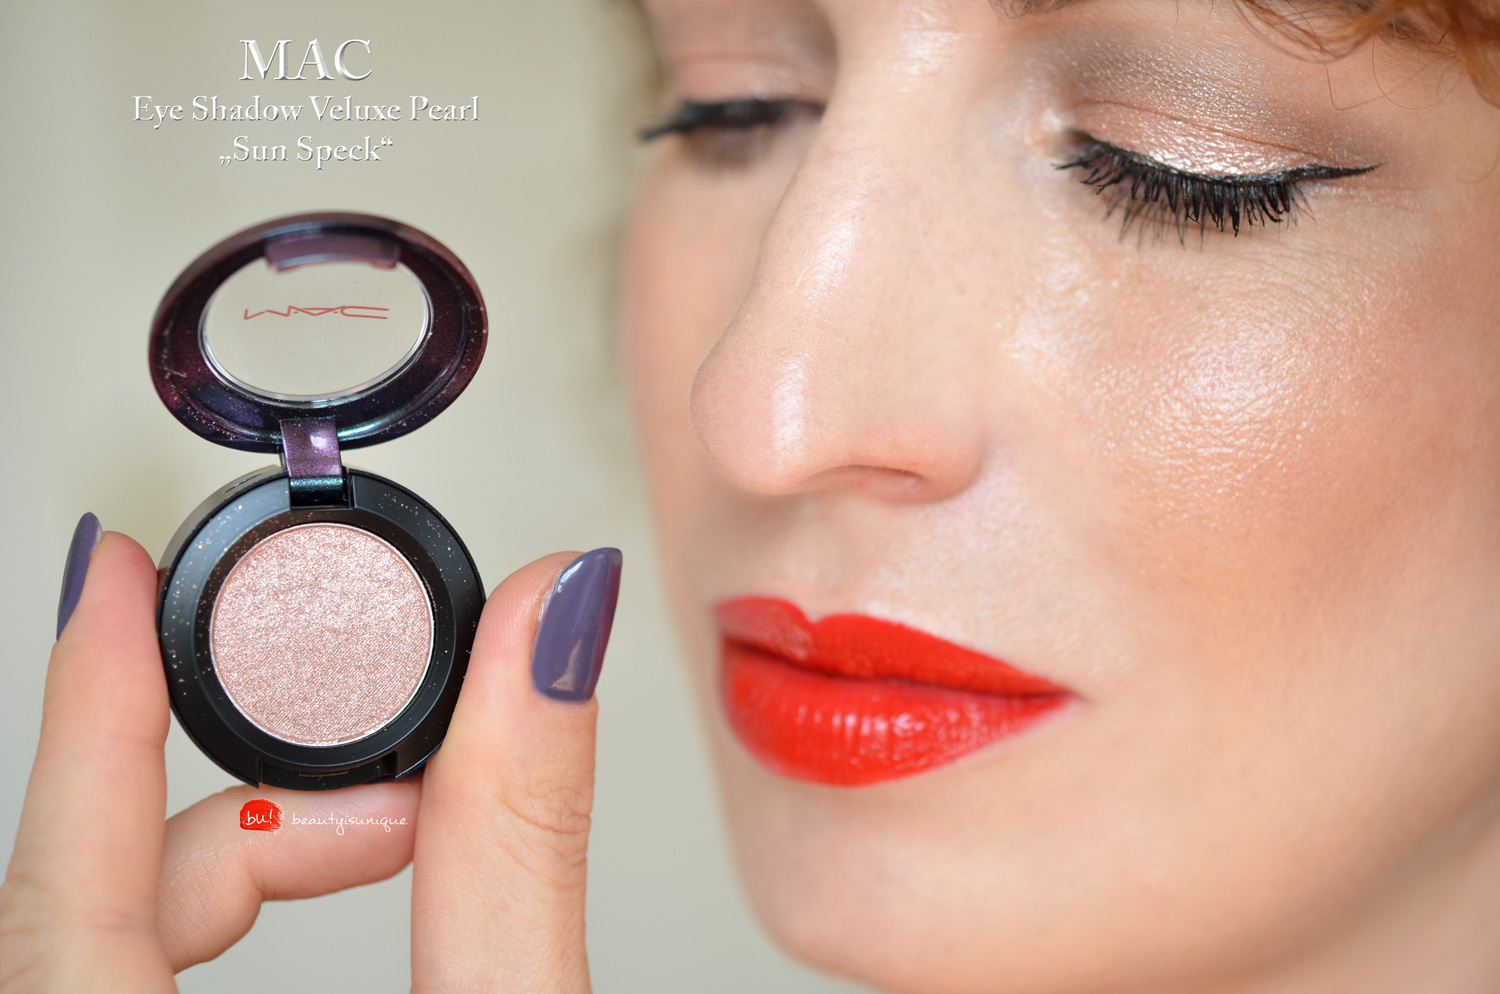 MAC-SUN-SPECK-eye-shadow-veluxe-pearl